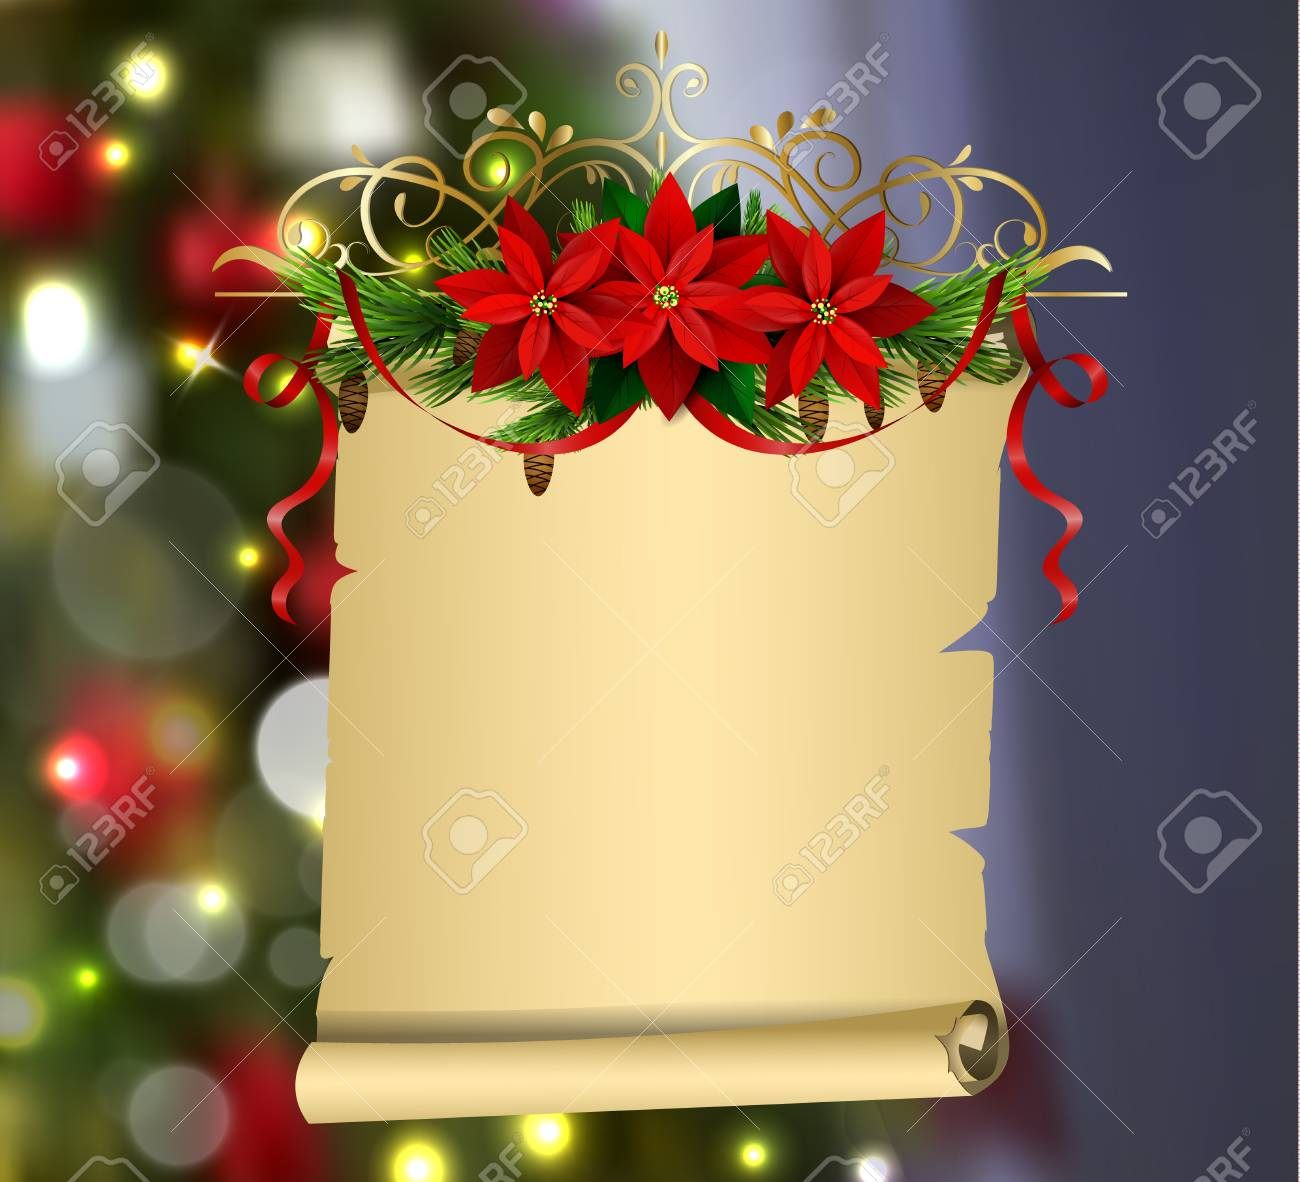 Paper Scroll With Christmas Decorations Vector For Your Design